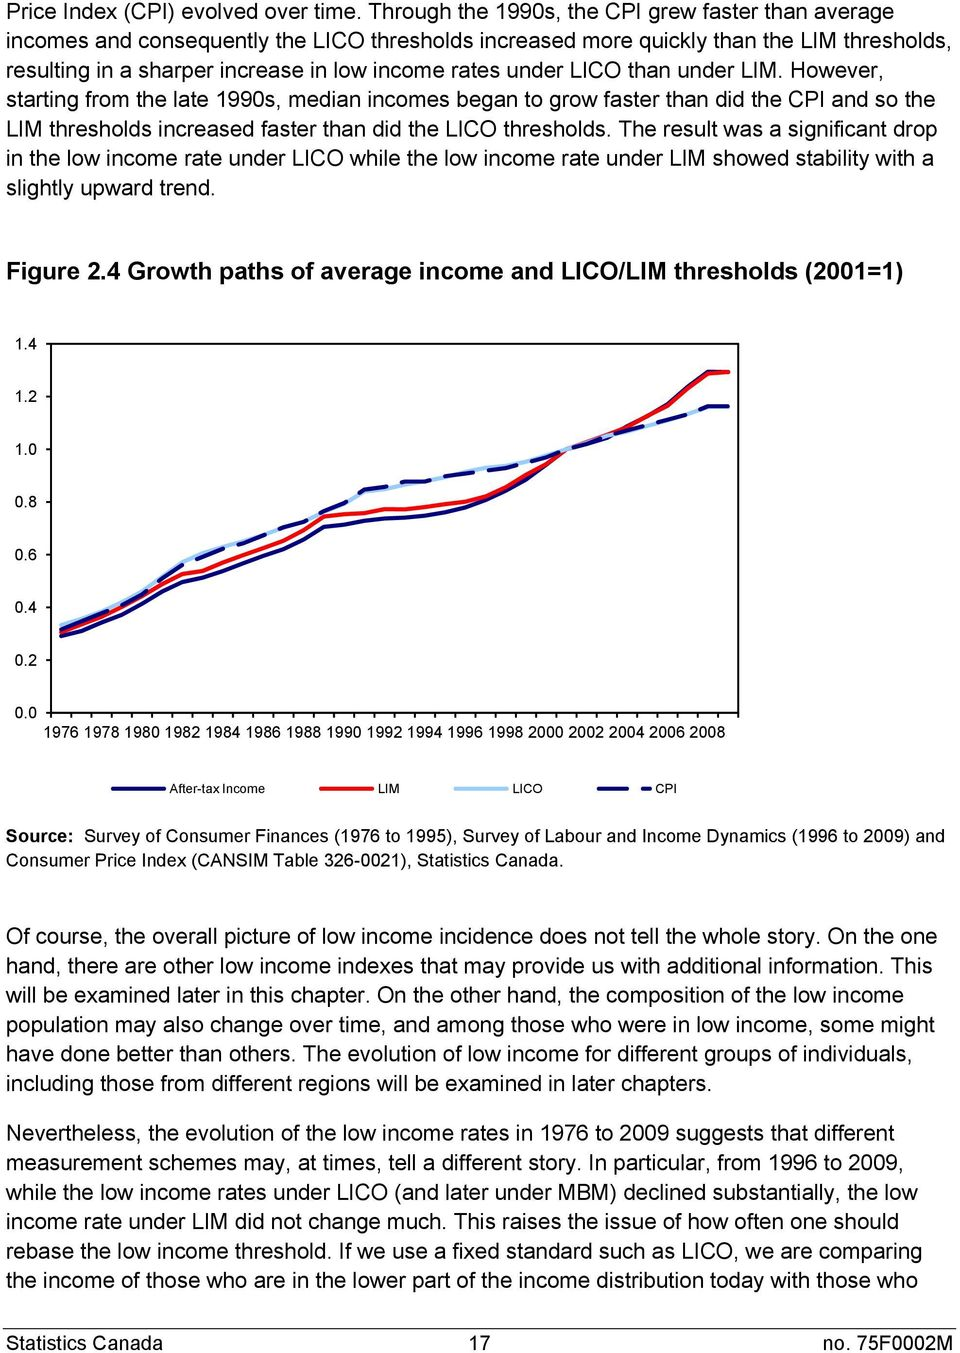 under LICO than under LIM. However, starting from the late 1990s, median incomes began to grow faster than did the CPI and so the LIM thresholds increased faster than did the LICO thresholds.